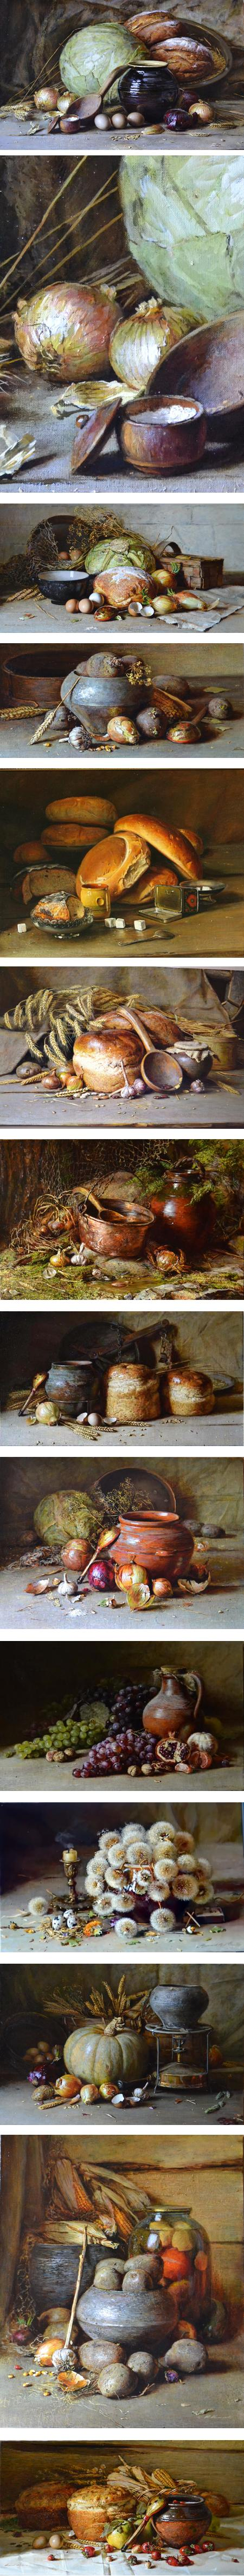 Yury Nikolaev, Russian still life painter